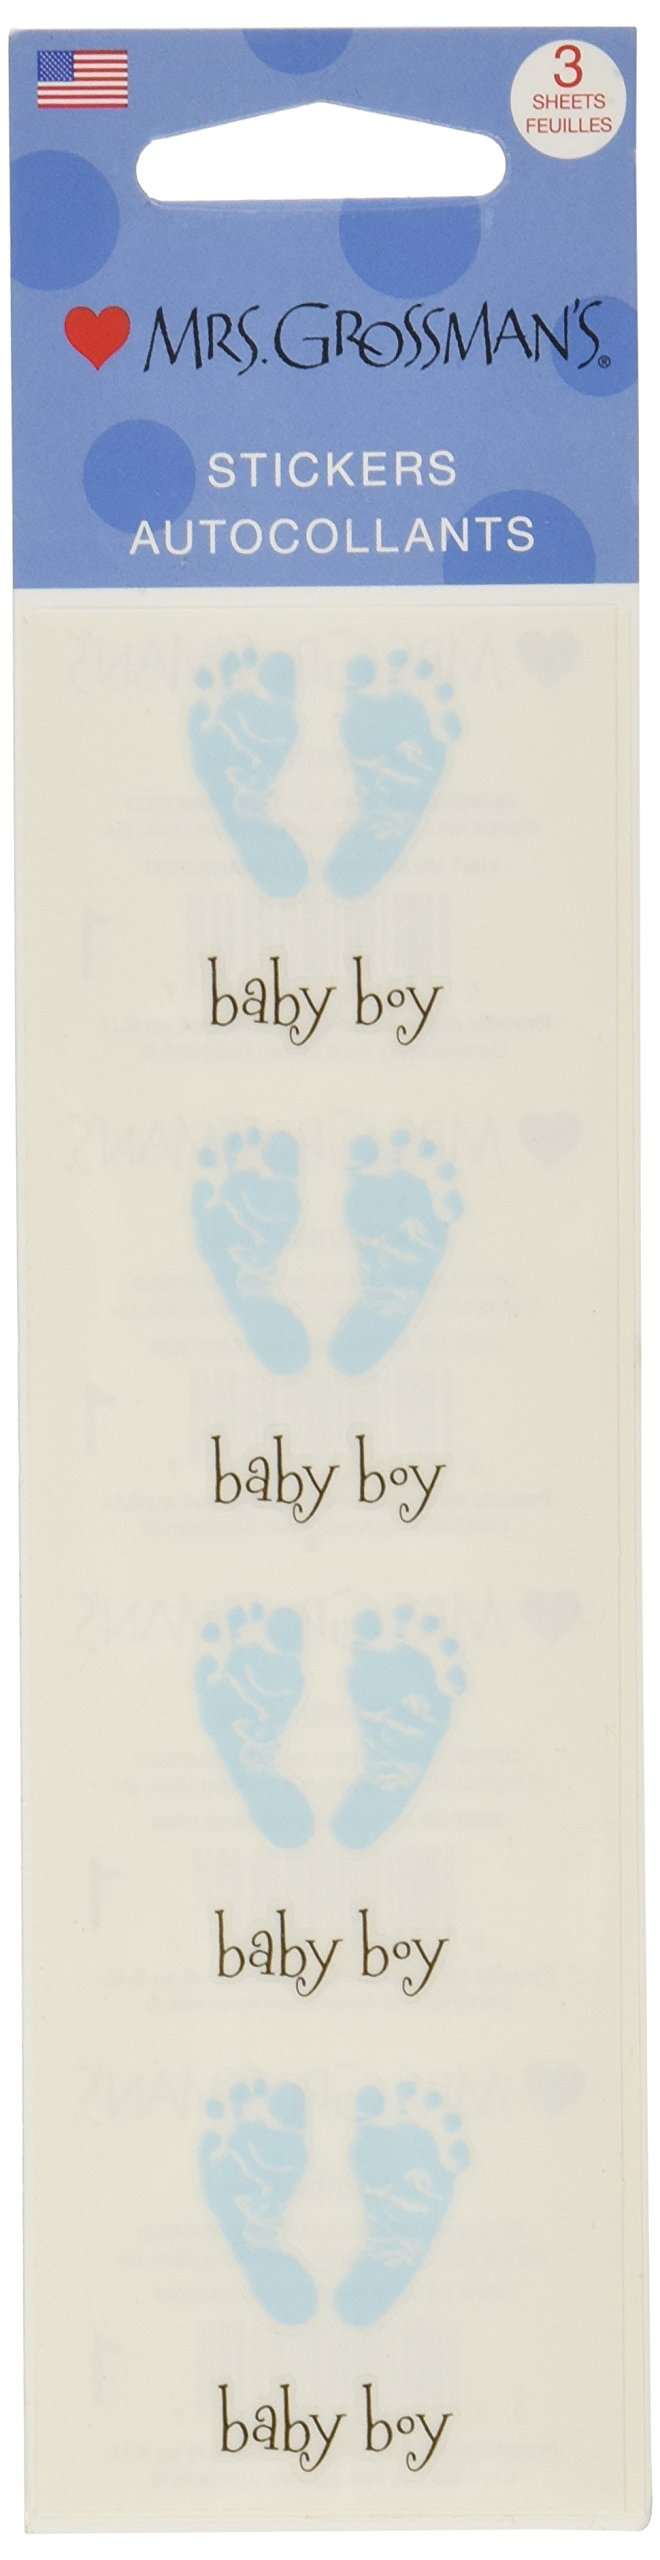 Mrs Grossman's Stickers - Blue Footprints